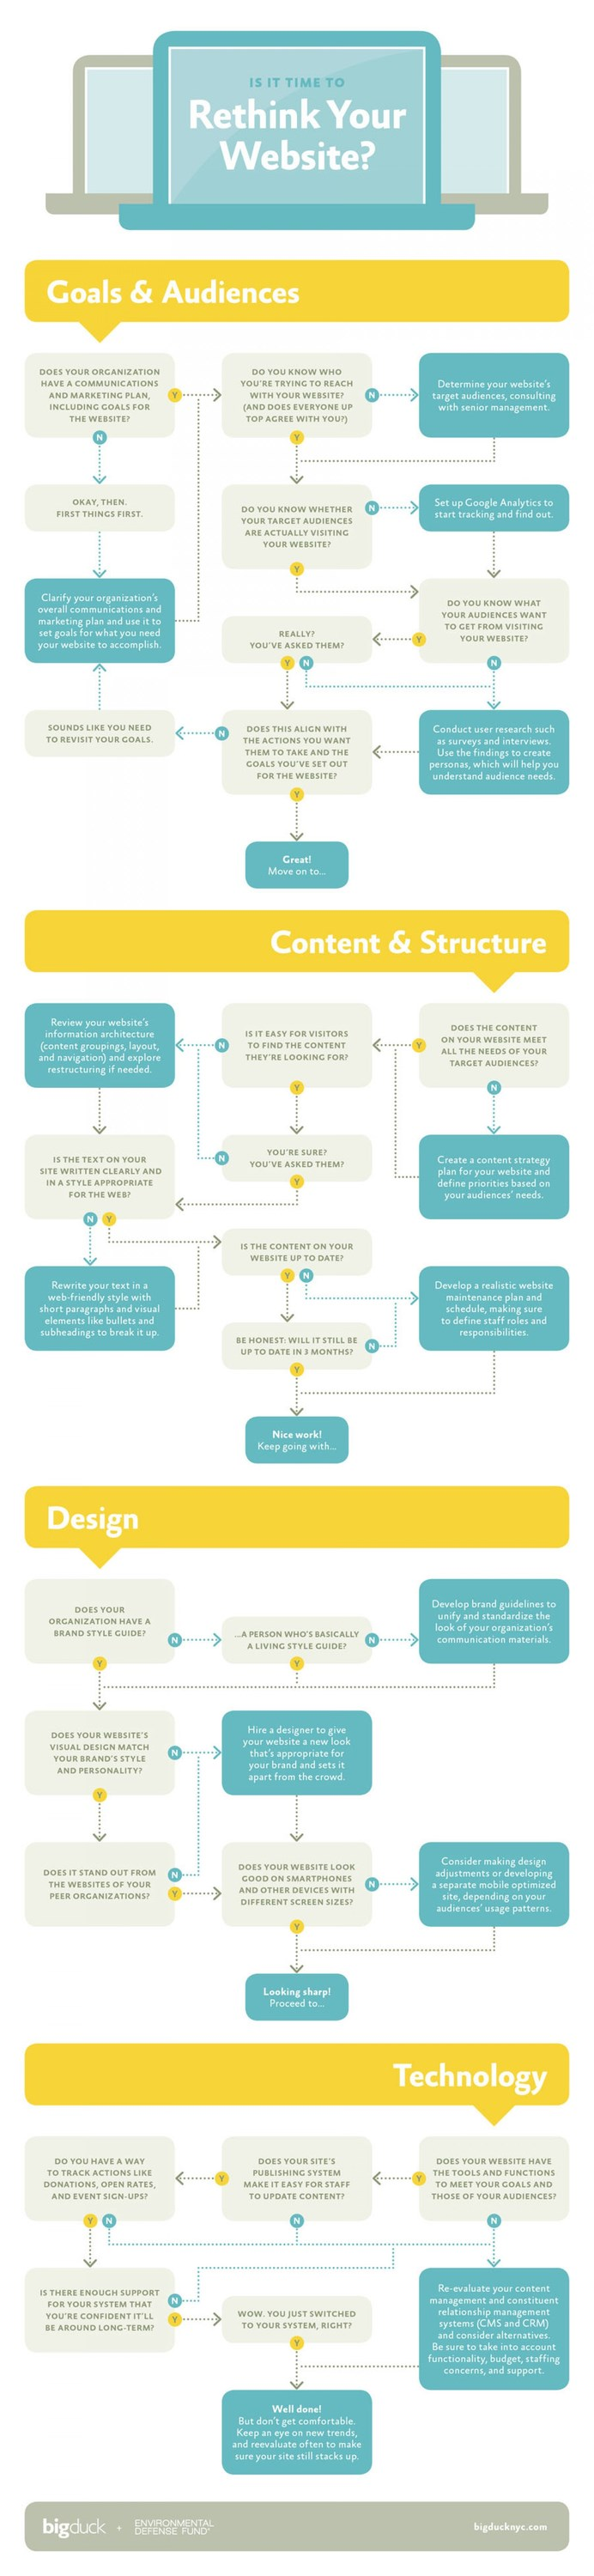 How to Rethink Your Website – Infographic